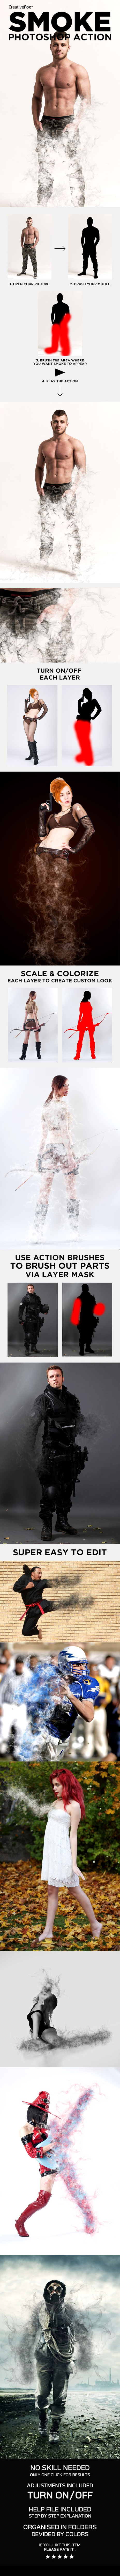 Smoke Photoshop Action - Smoke Effect Creator Action - Photo Effects Actions